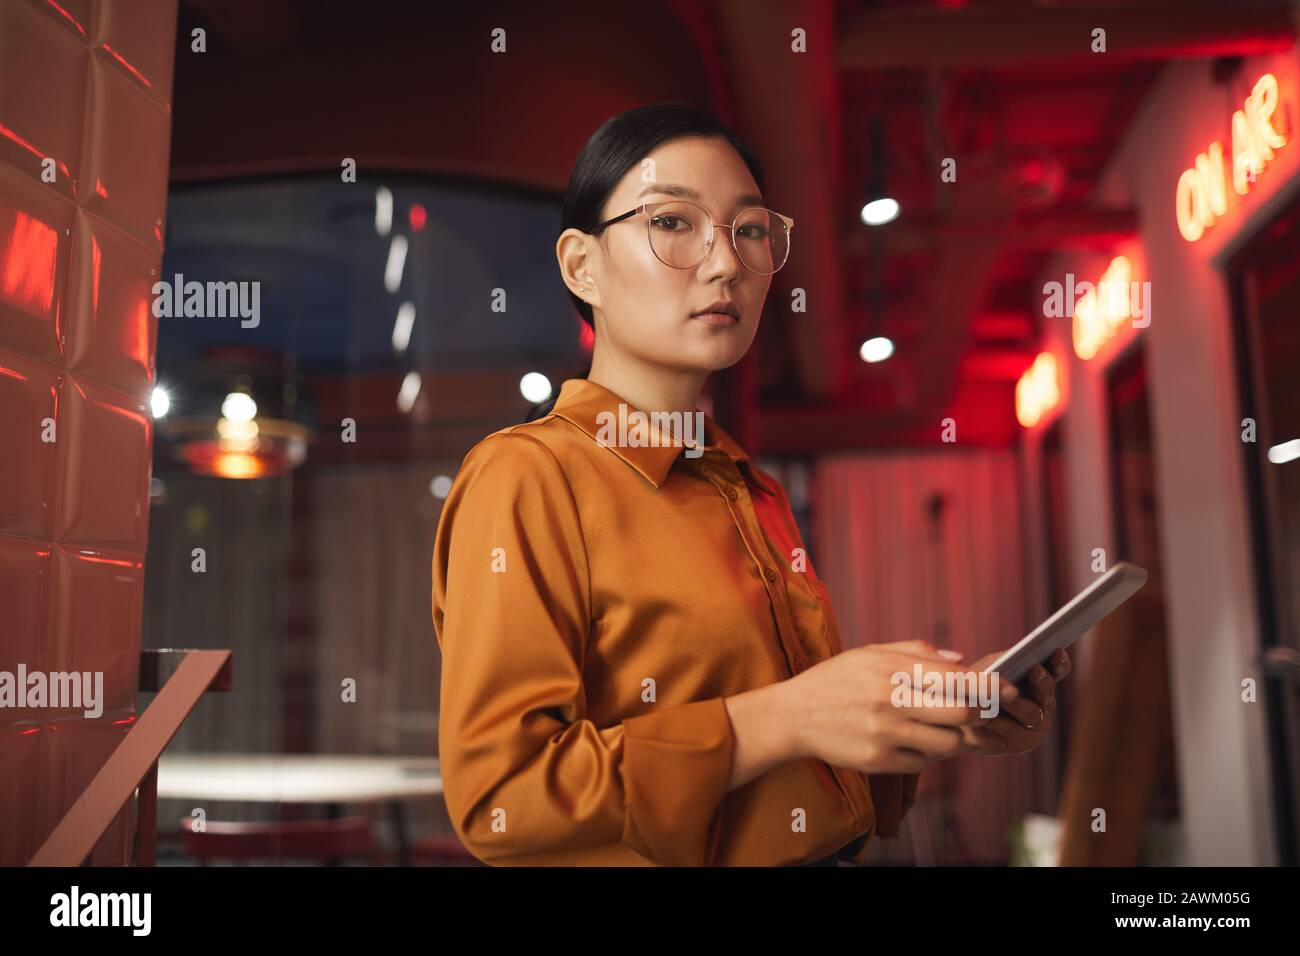 Waist up portrait of modern Asian businesswoman holding tablet and looking at camera while posing outdoors, copy space Stock Photo